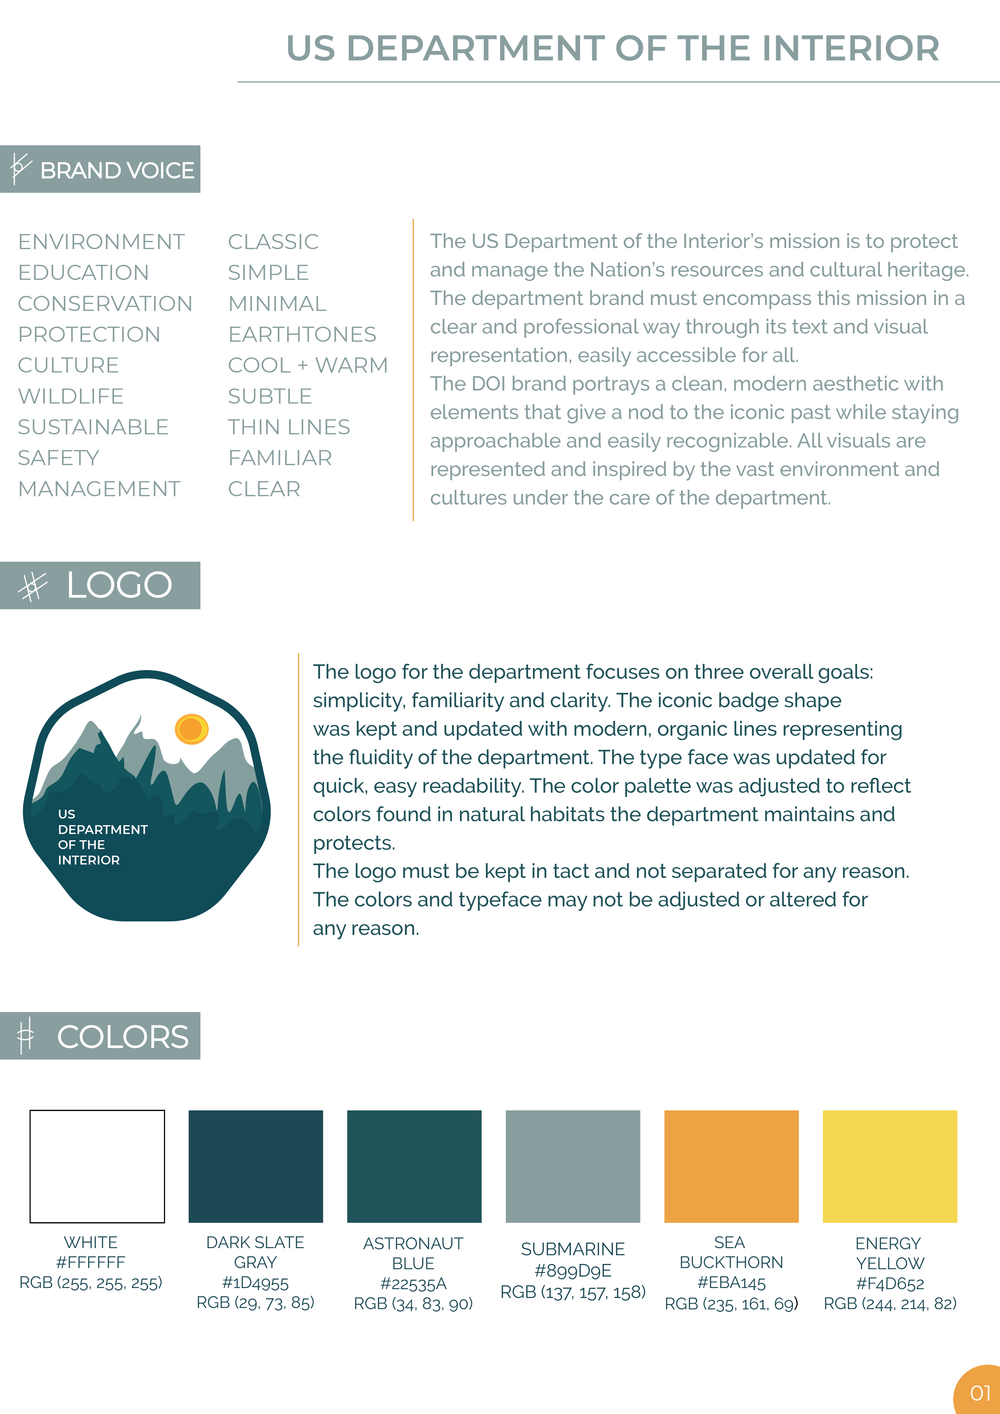 HEEBNER-DOI-Style-Guide_Artboard Page 1.png